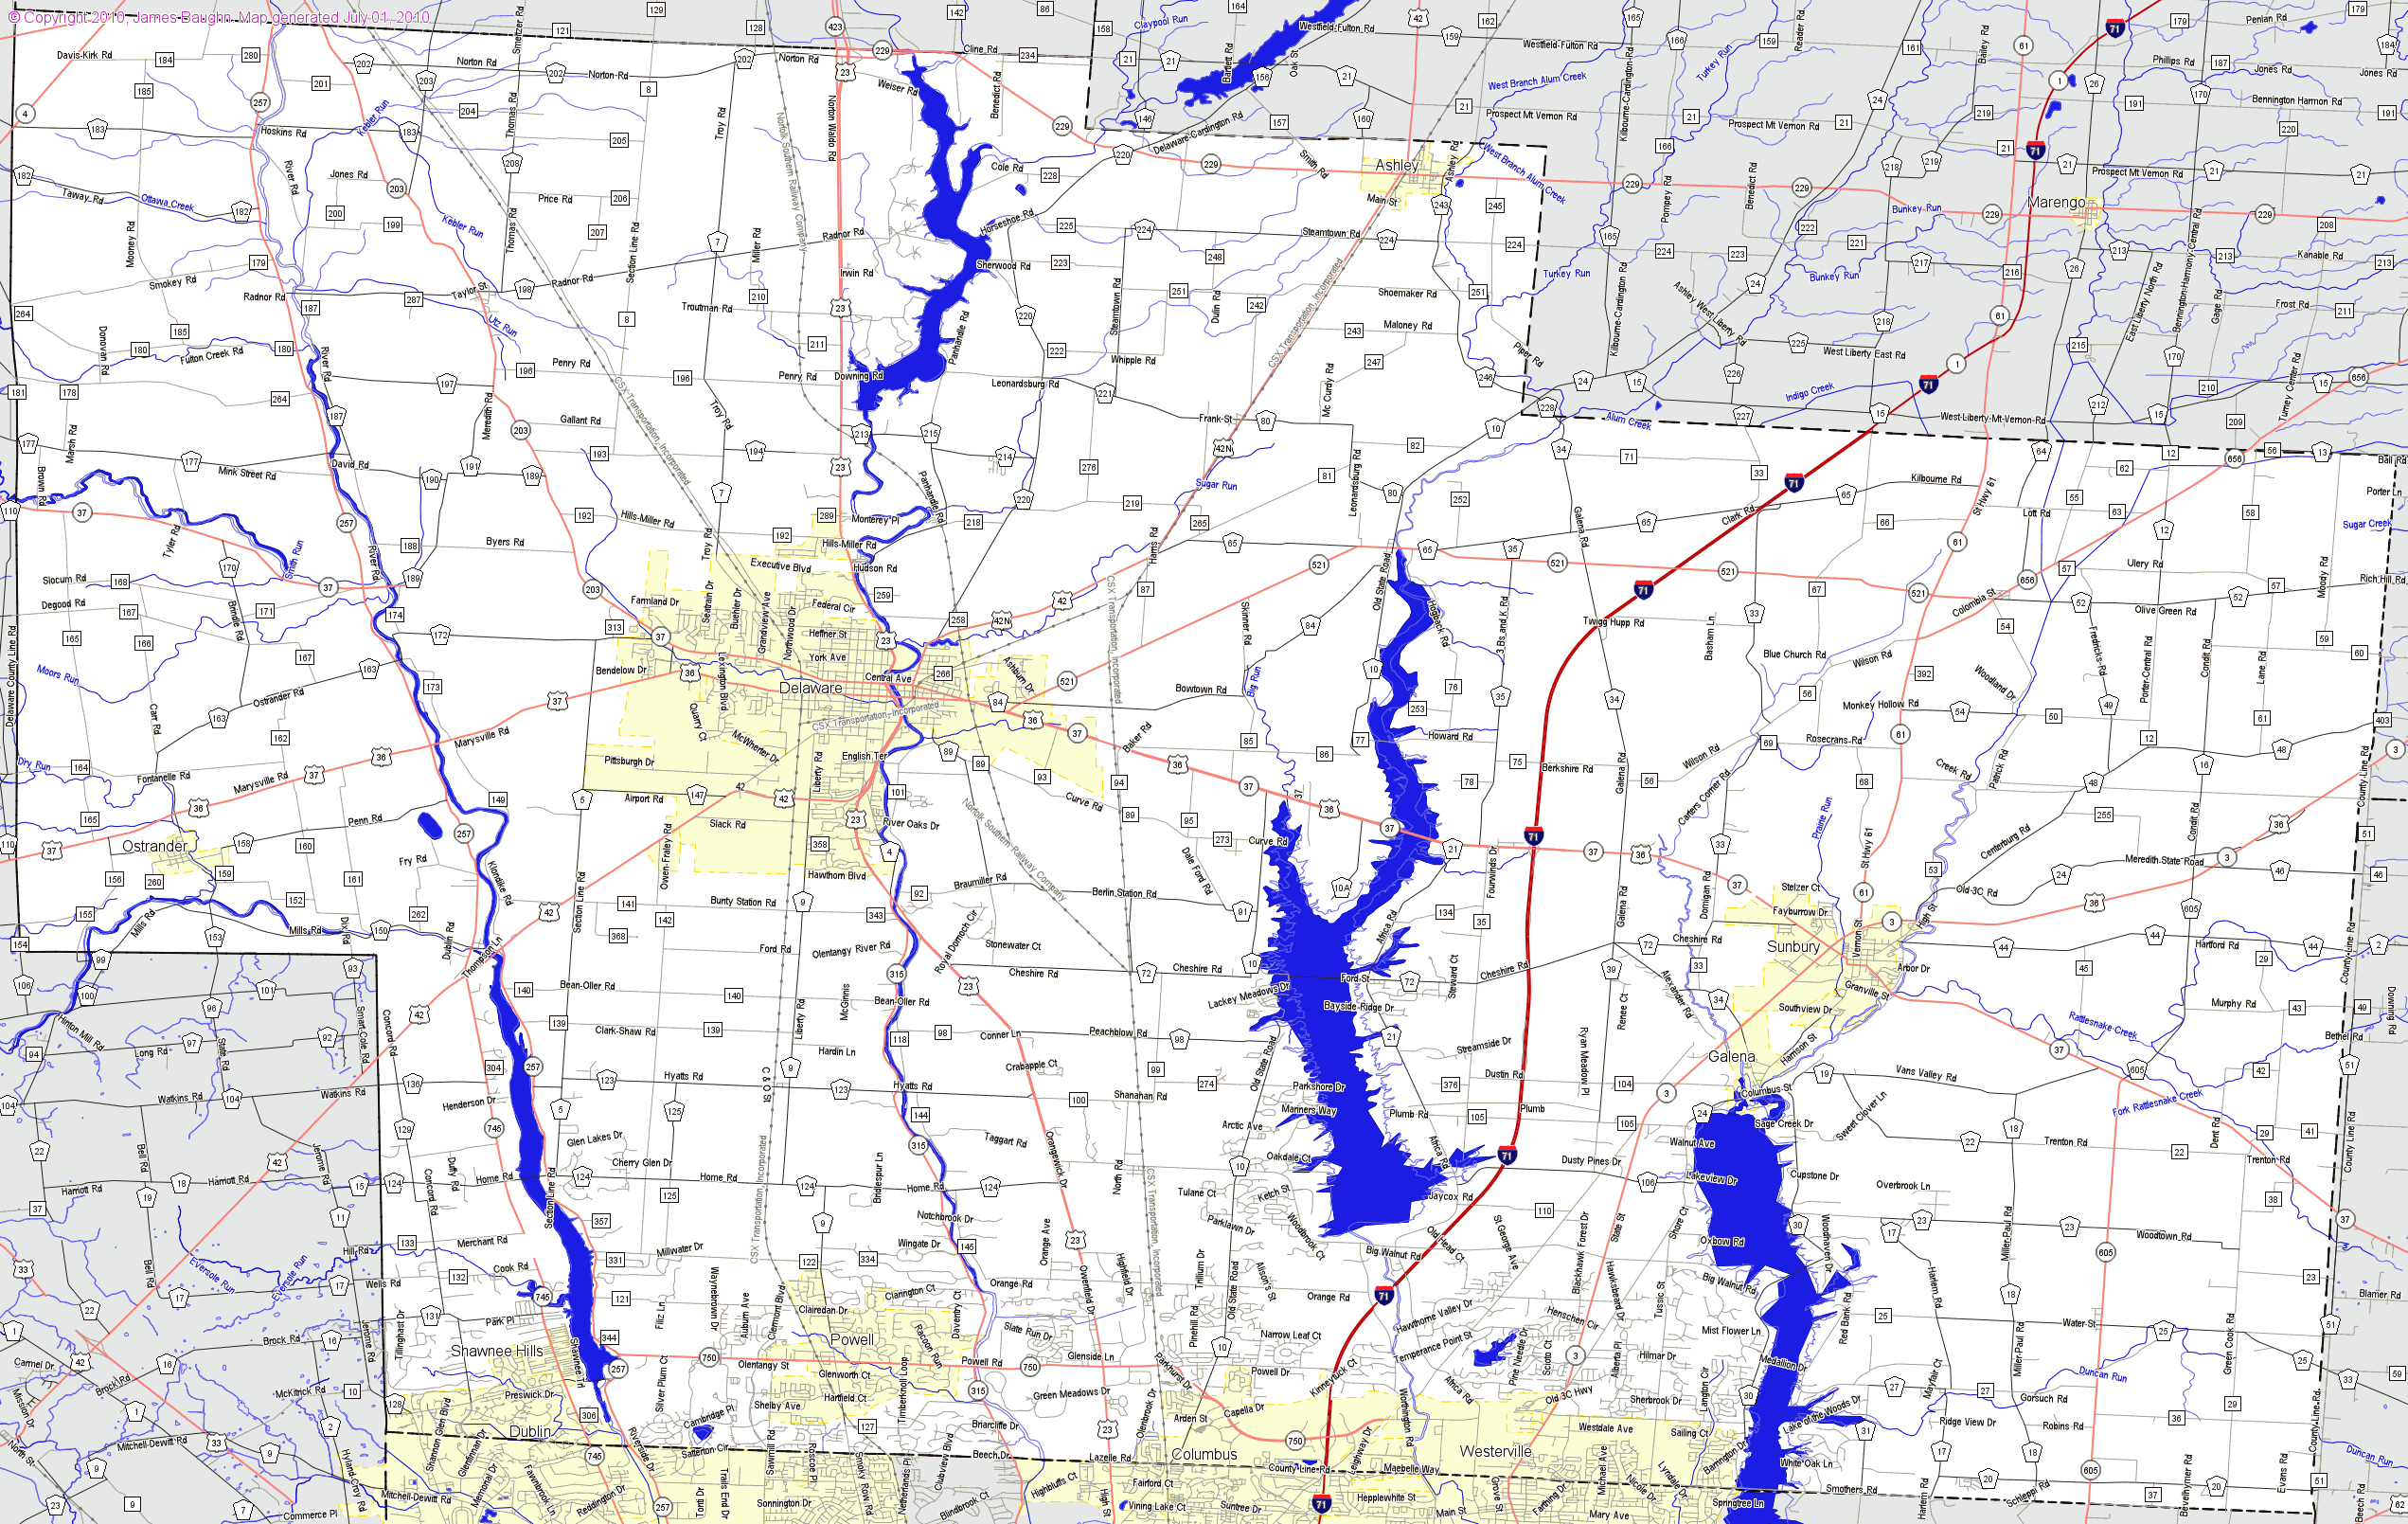 licking county map with Big Map on 7163372347 in addition Central Ohio Counties Courts together with Ky Royalton together with Big Map further Ohio County Maps.